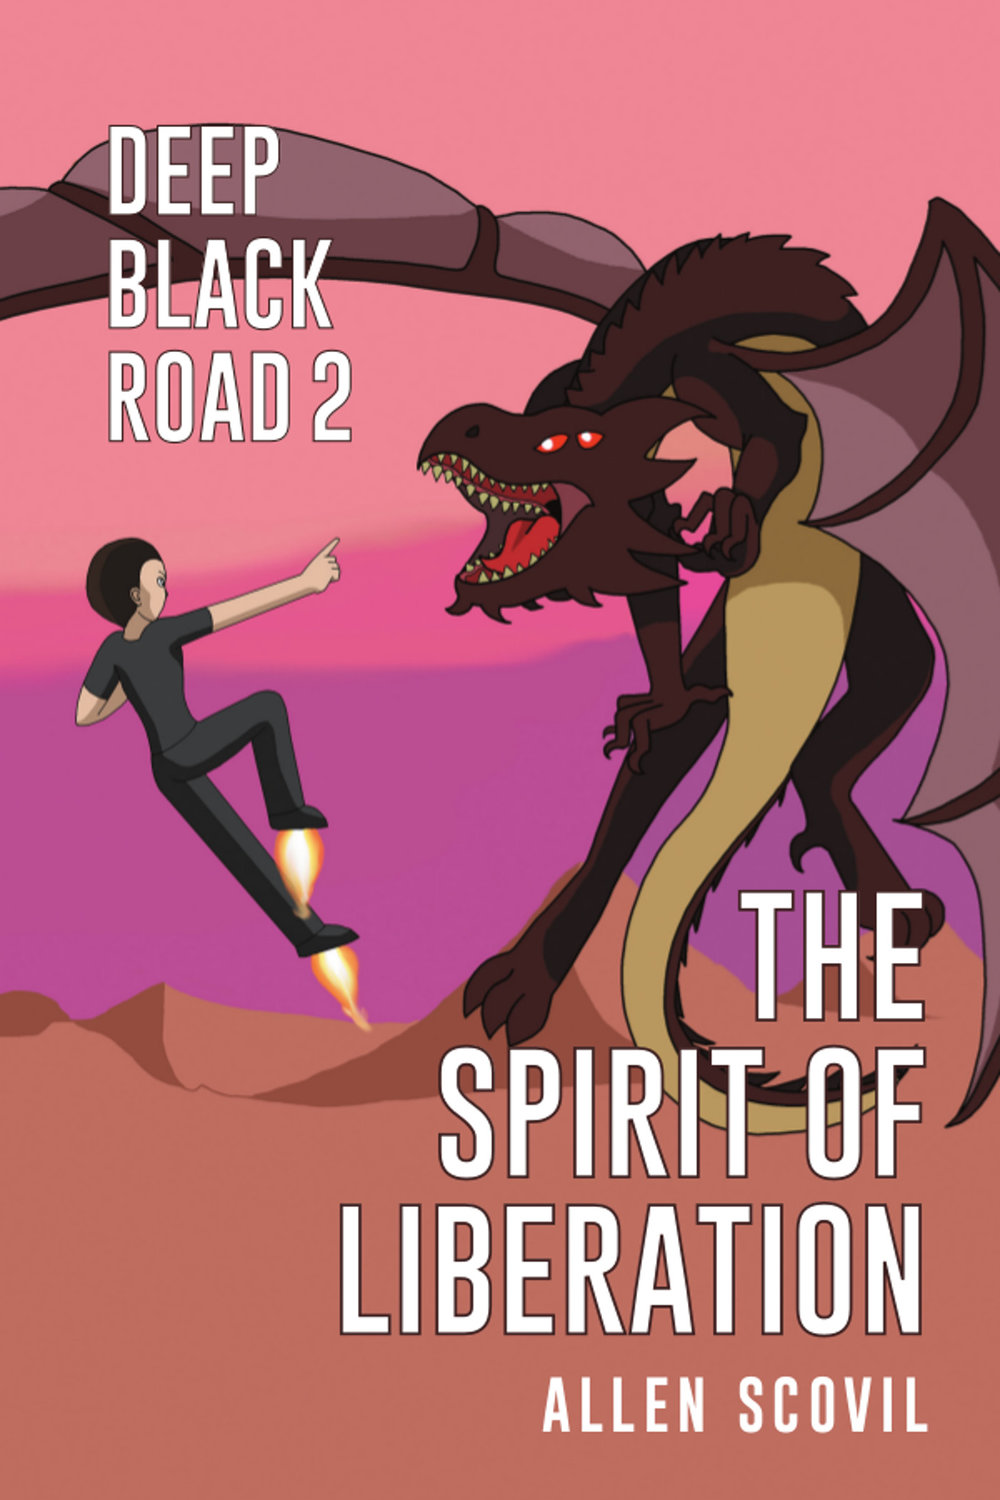 Deep Black Road 2: The Spirit of Liberation - This is the second book in the Deep Black Road series.In 2080, a robotic child is begotten; and when merely weeks old, it experiences first-hand the battle with dark spirits, as around it a great evil consumes the world of the carnate humans.As an adult, it is unable to follow its fellows out into the galaxy; so it wanders alone as an alien in a world of short-lived and forgetful people, working tirelessly to counter the schemes of those dark spirits. However, after nearly five hundred years, the spirit of darkness that was the source of the ancient disaster raises its ugly head once more in the heart of the kingdom of Liberation.The robot child, joining forces with a young man who has escaped the kingdom's system of slavery, seeks for a way to stop the sudden resurgence of the dangerous technologies of the past at the hands of the king, Father Abraham; but they come too late to counter his growing power on their own.As they flee for their lives, who can they find who'll be able to help them, in a spiritual war where their enemy controls half a continent?